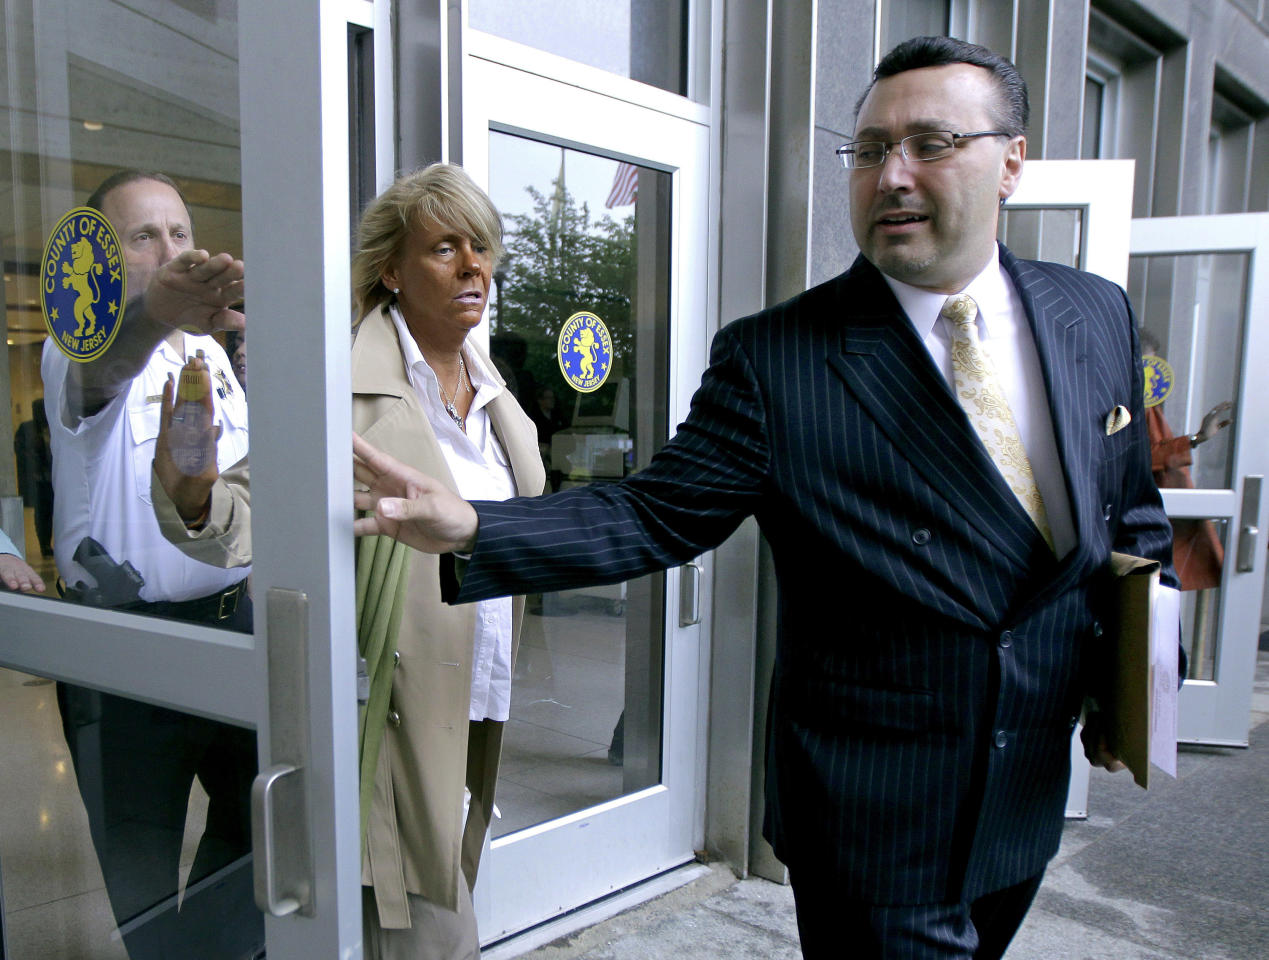 Patricia Krentcil, 44, center, walks out of Essex County Superior Court with her lawyer John Caruso, right, after court appearance on charges of child endangerment, Wednesday, May 2, 2012 in Newark, N.J. Krentcil is accused of taking her 5-year-old child into a tanning booth. Krentcil tells The Associated Press her daughter got her sunburn from being outside on a recent warm day. New Jersey state law prohibits anyone under 14 from using tanning salons.(AP Photo/Julio Cortez)